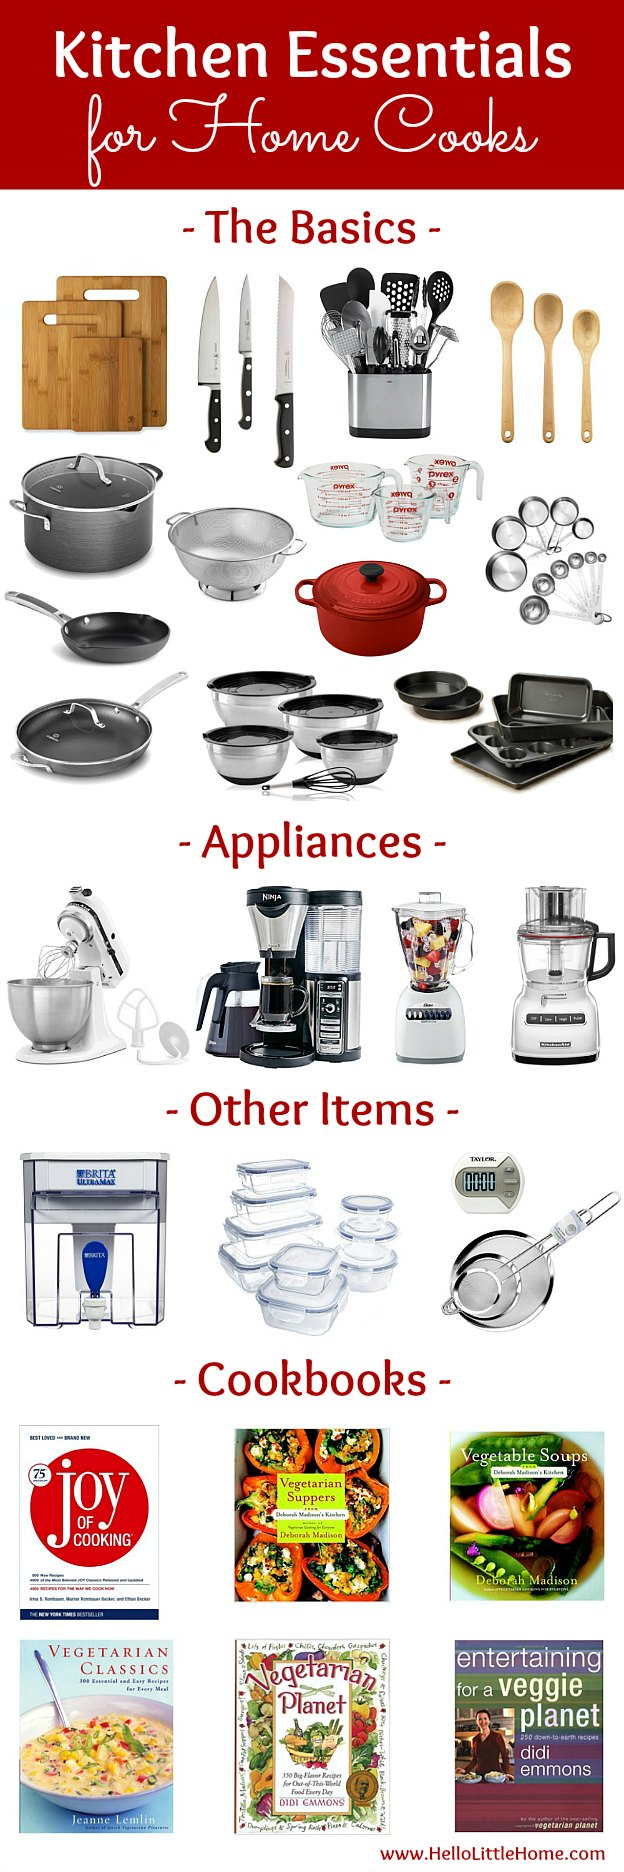 Kitchen Essentials List for Home Cooks | Hello Little Home